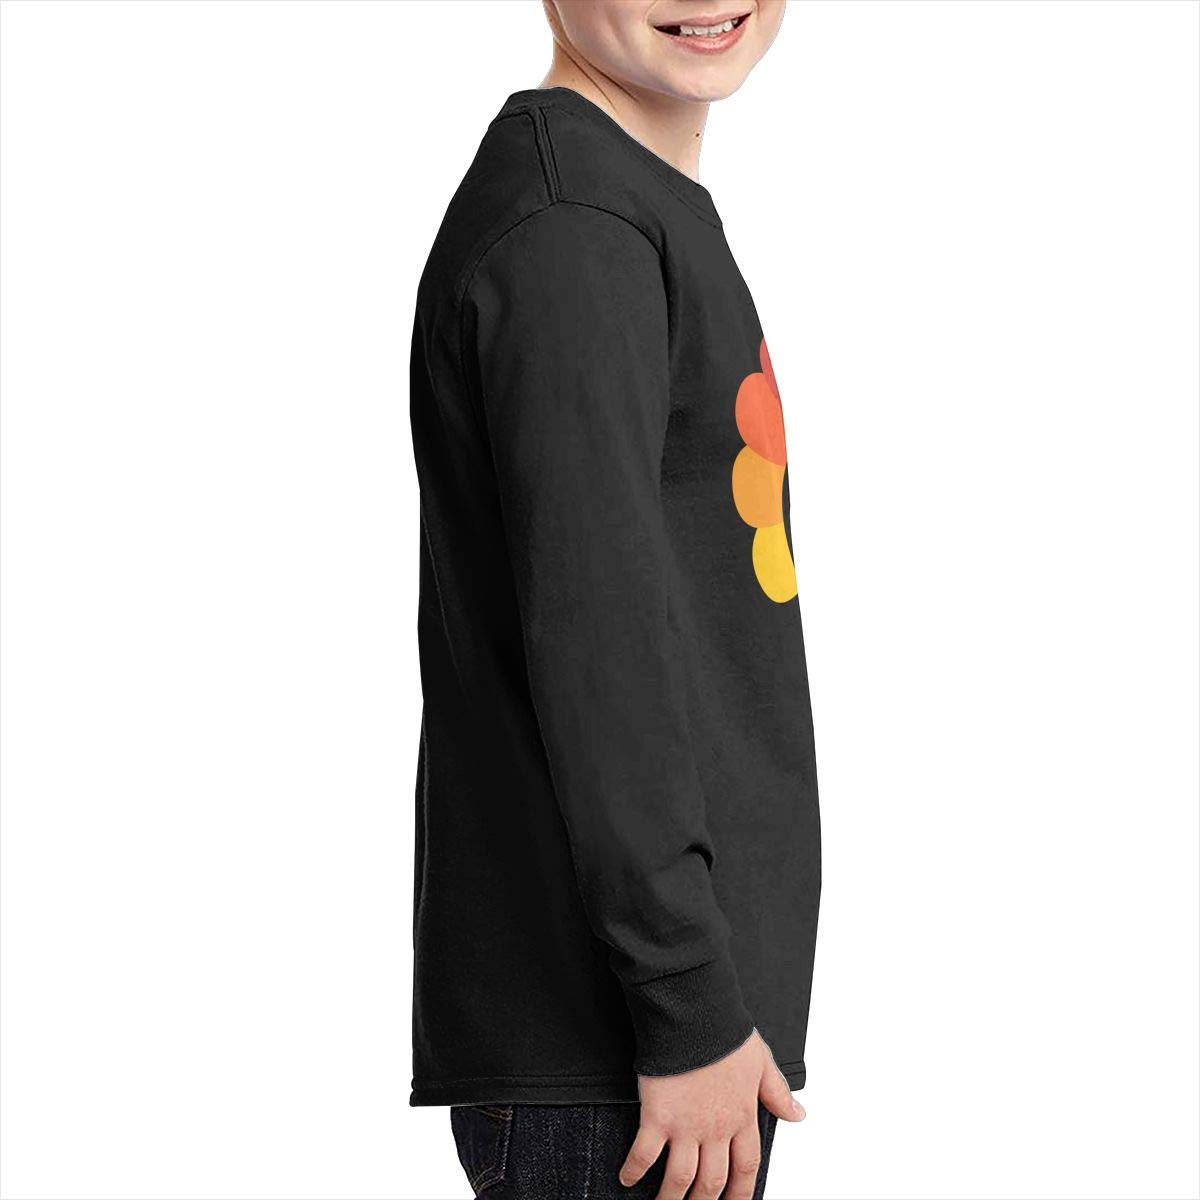 Boys Soft Long Sleeve Crew Neck Cotton Pilgrim Turkey Tee Top for Youth